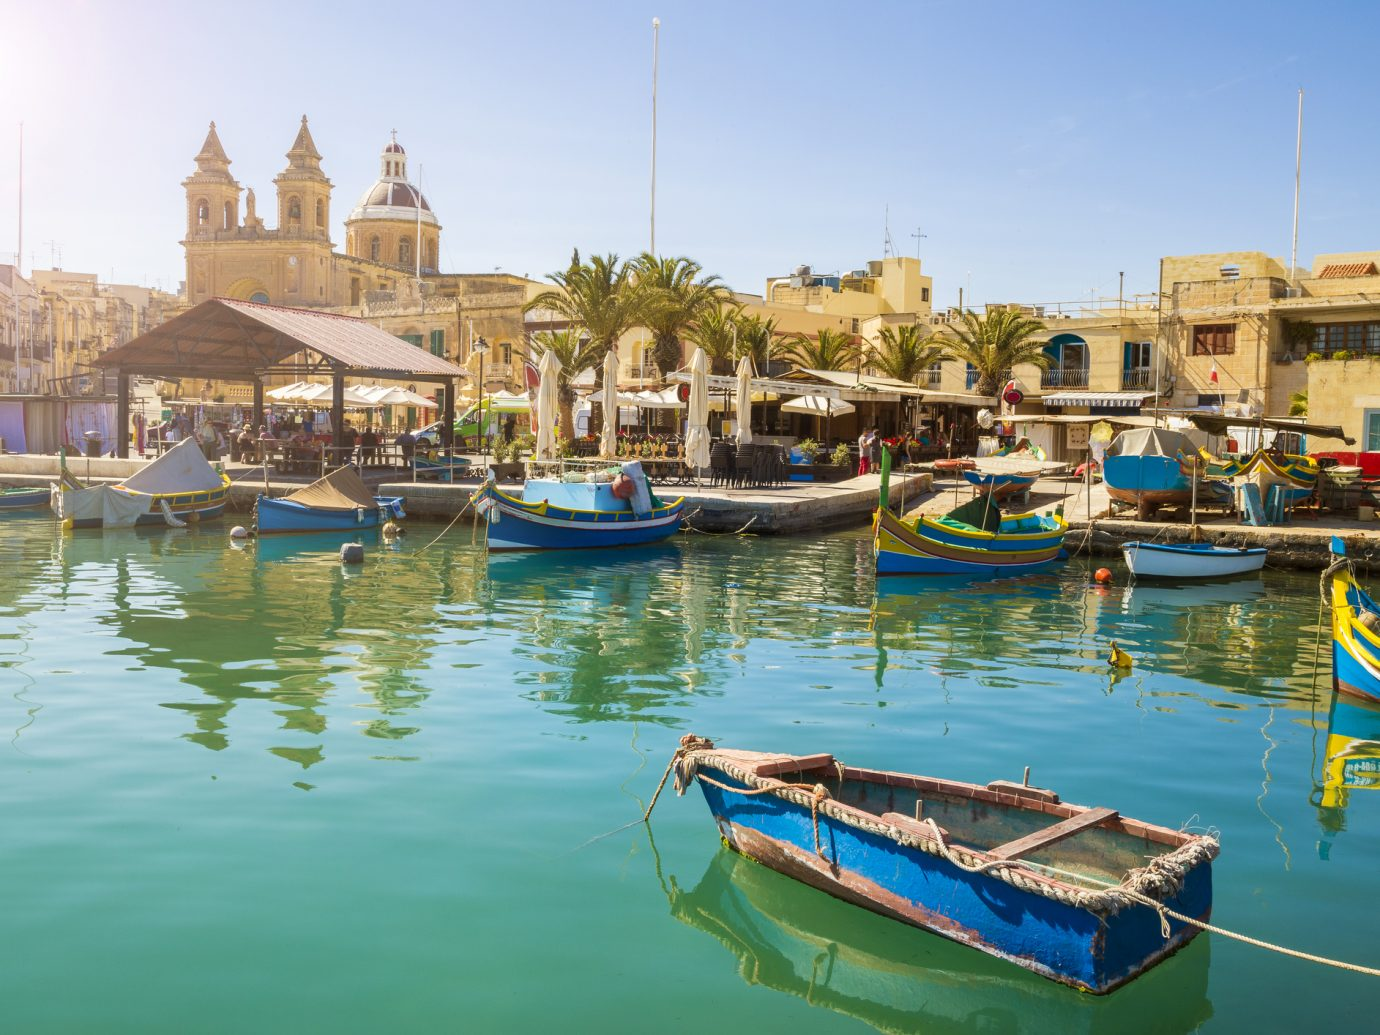 Malta - Marsaxlokk market with traditional colorful Luzzu fishing boats